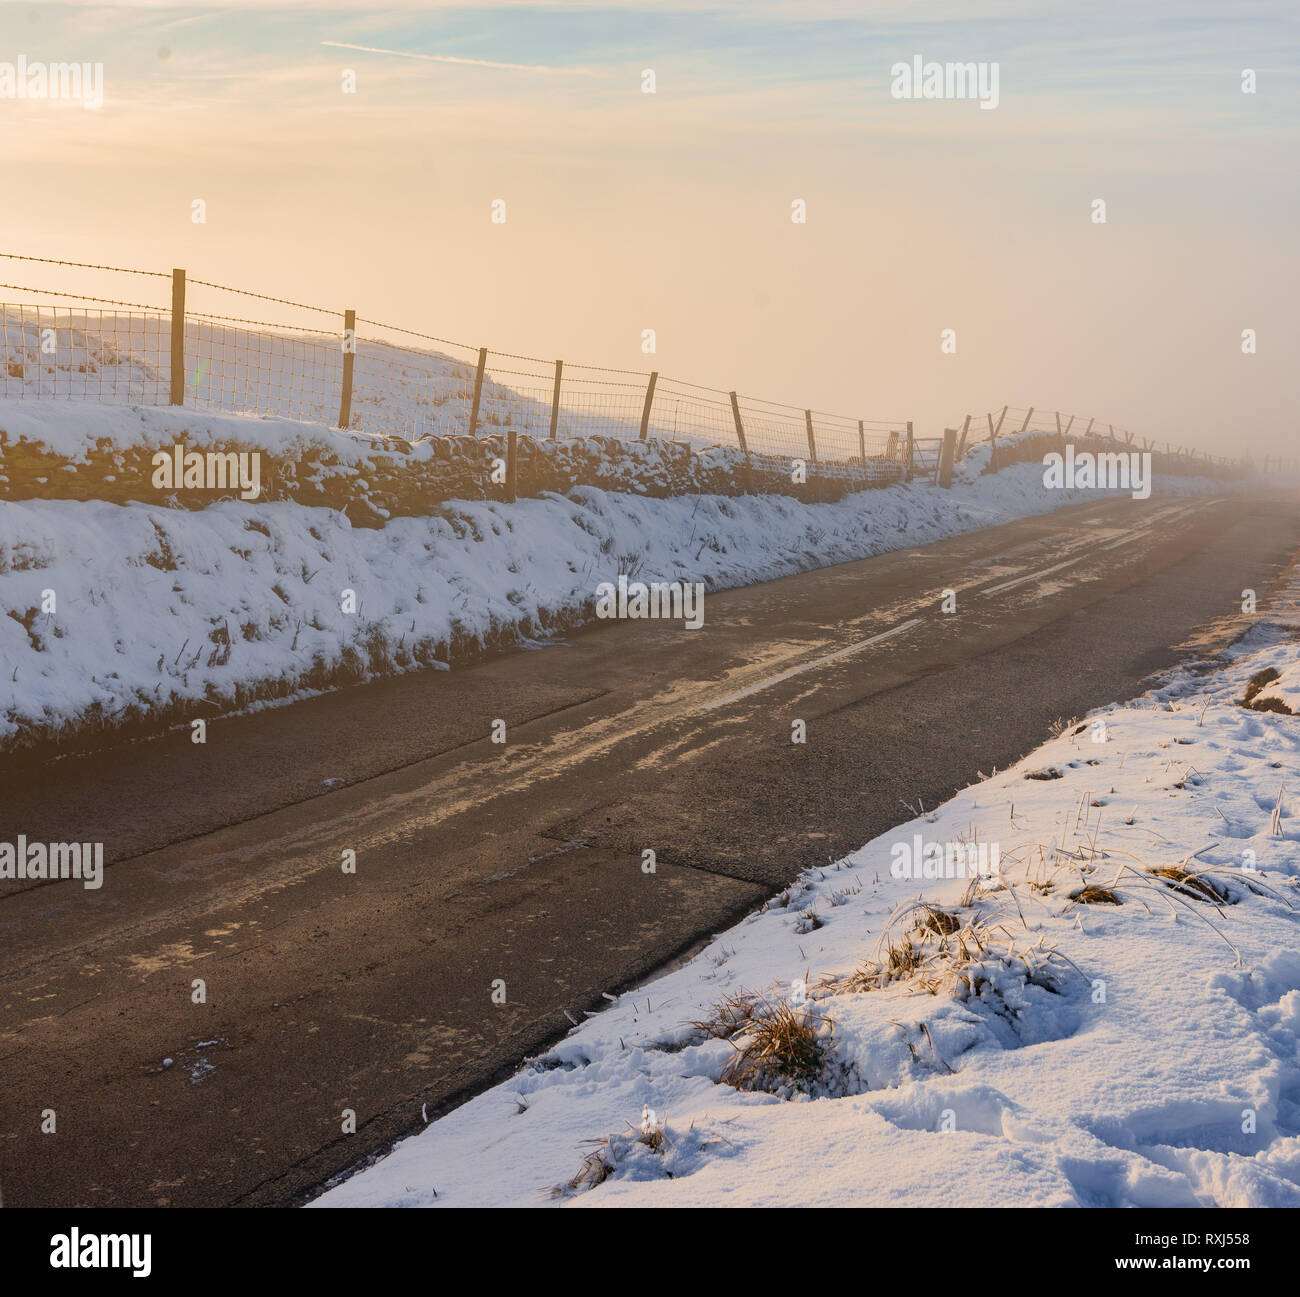 A deep fog rises from a country road in the middle of winter, 2019 Stock Photo